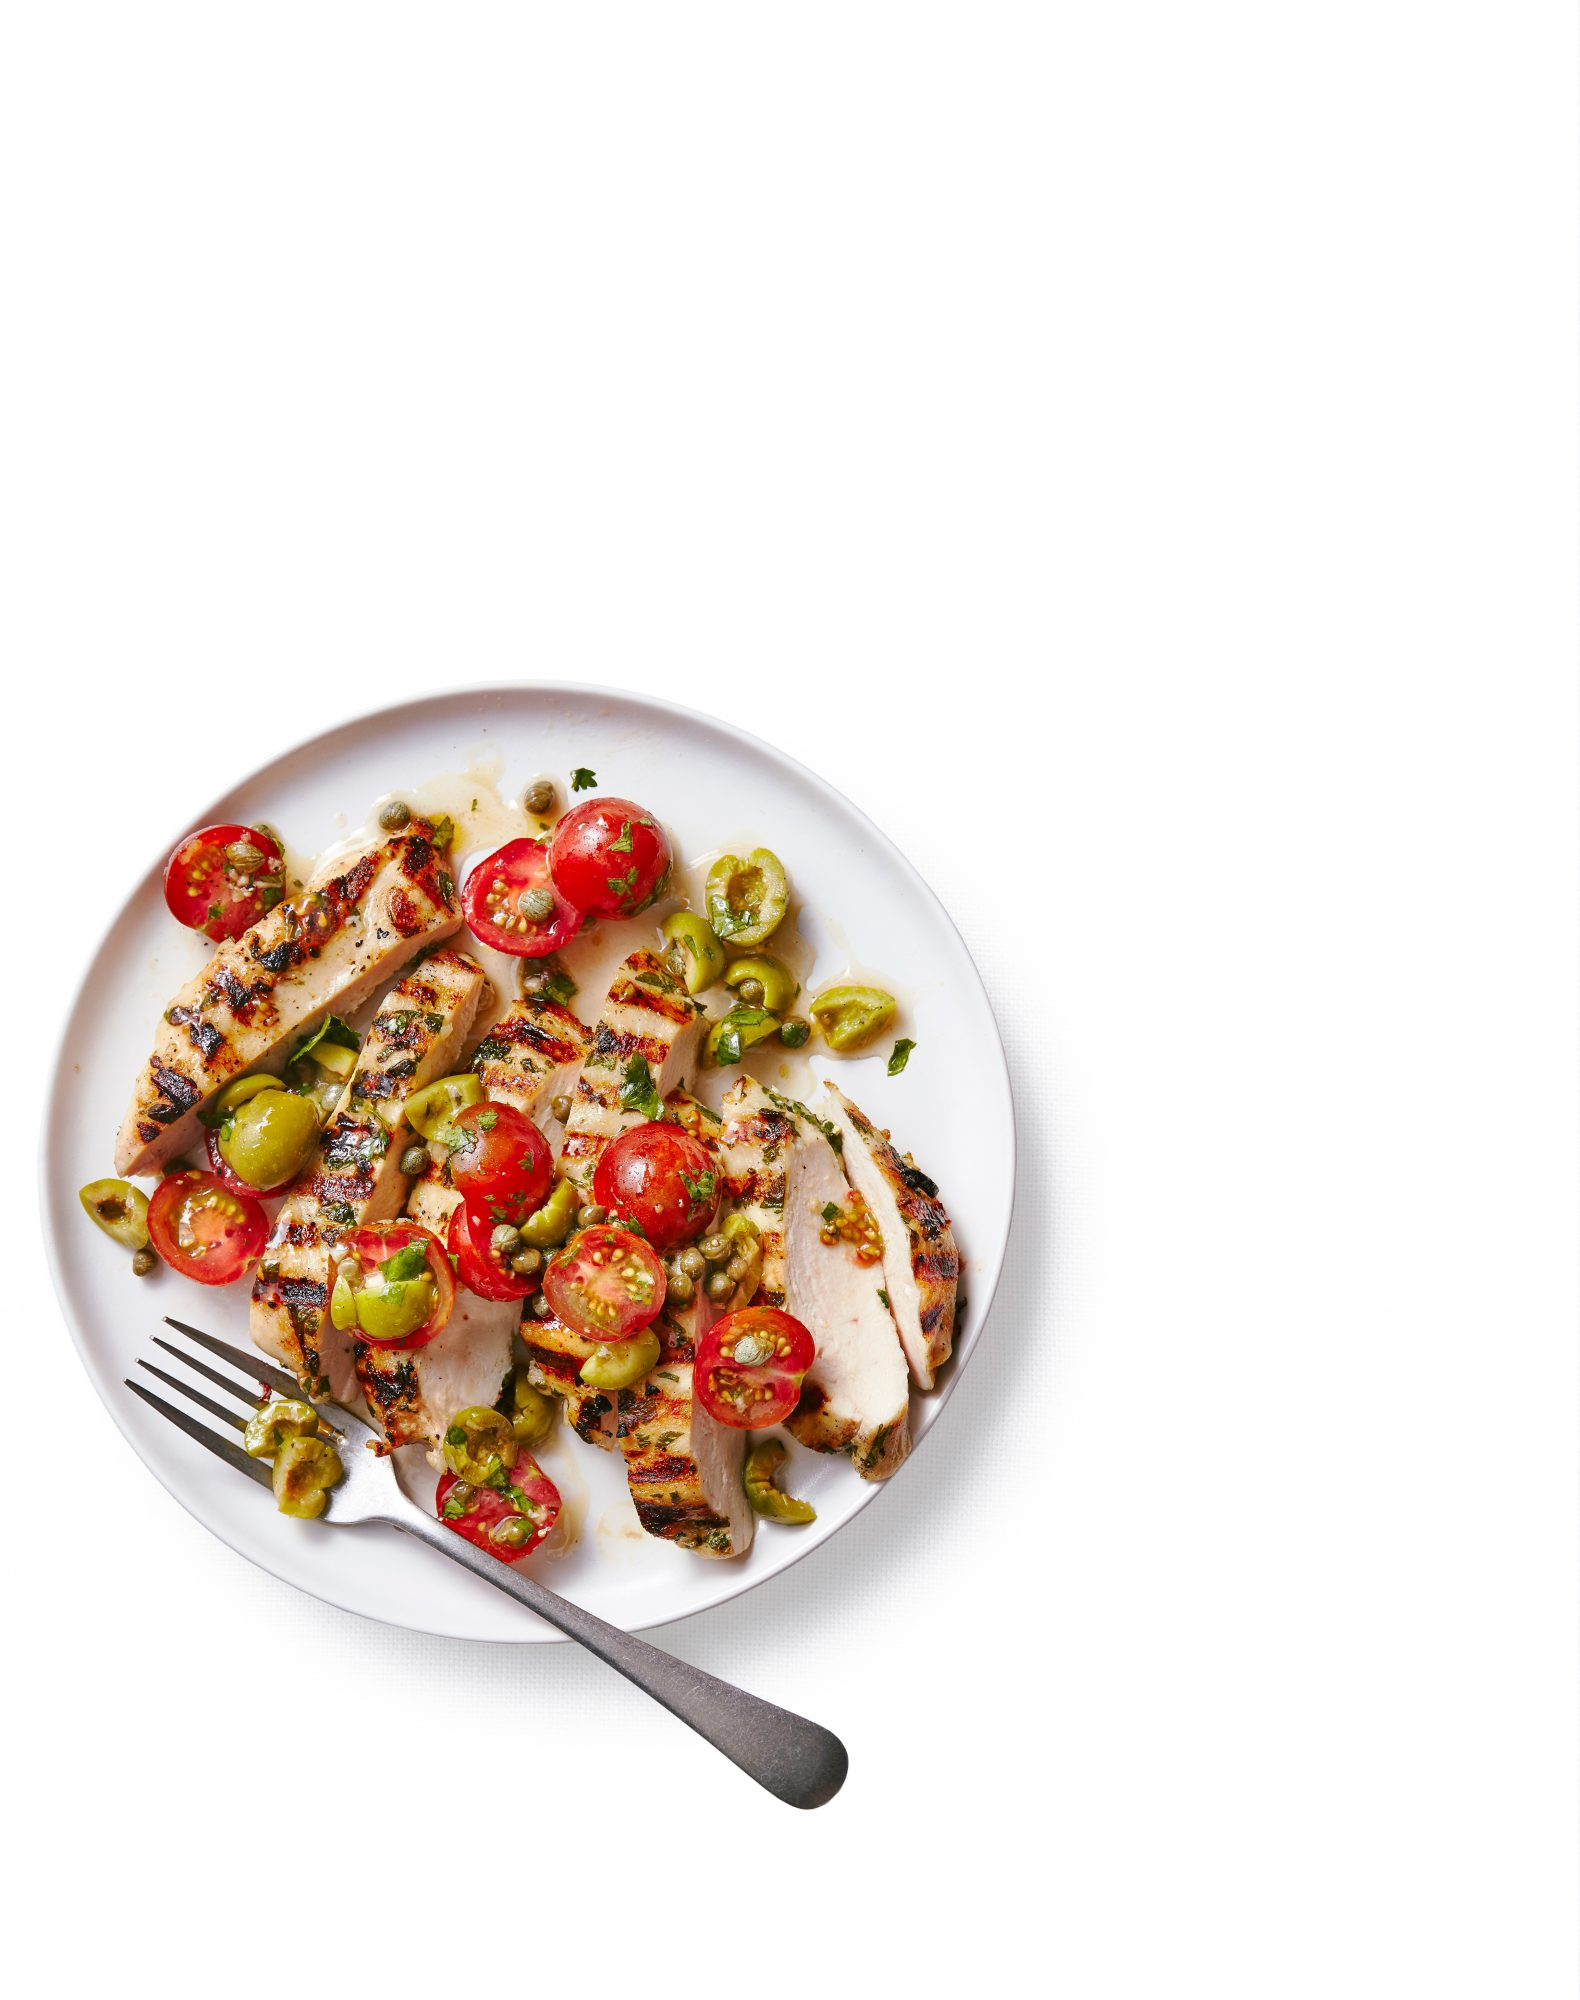 chicken-green-olives-capers-tomatoes-su.jpg